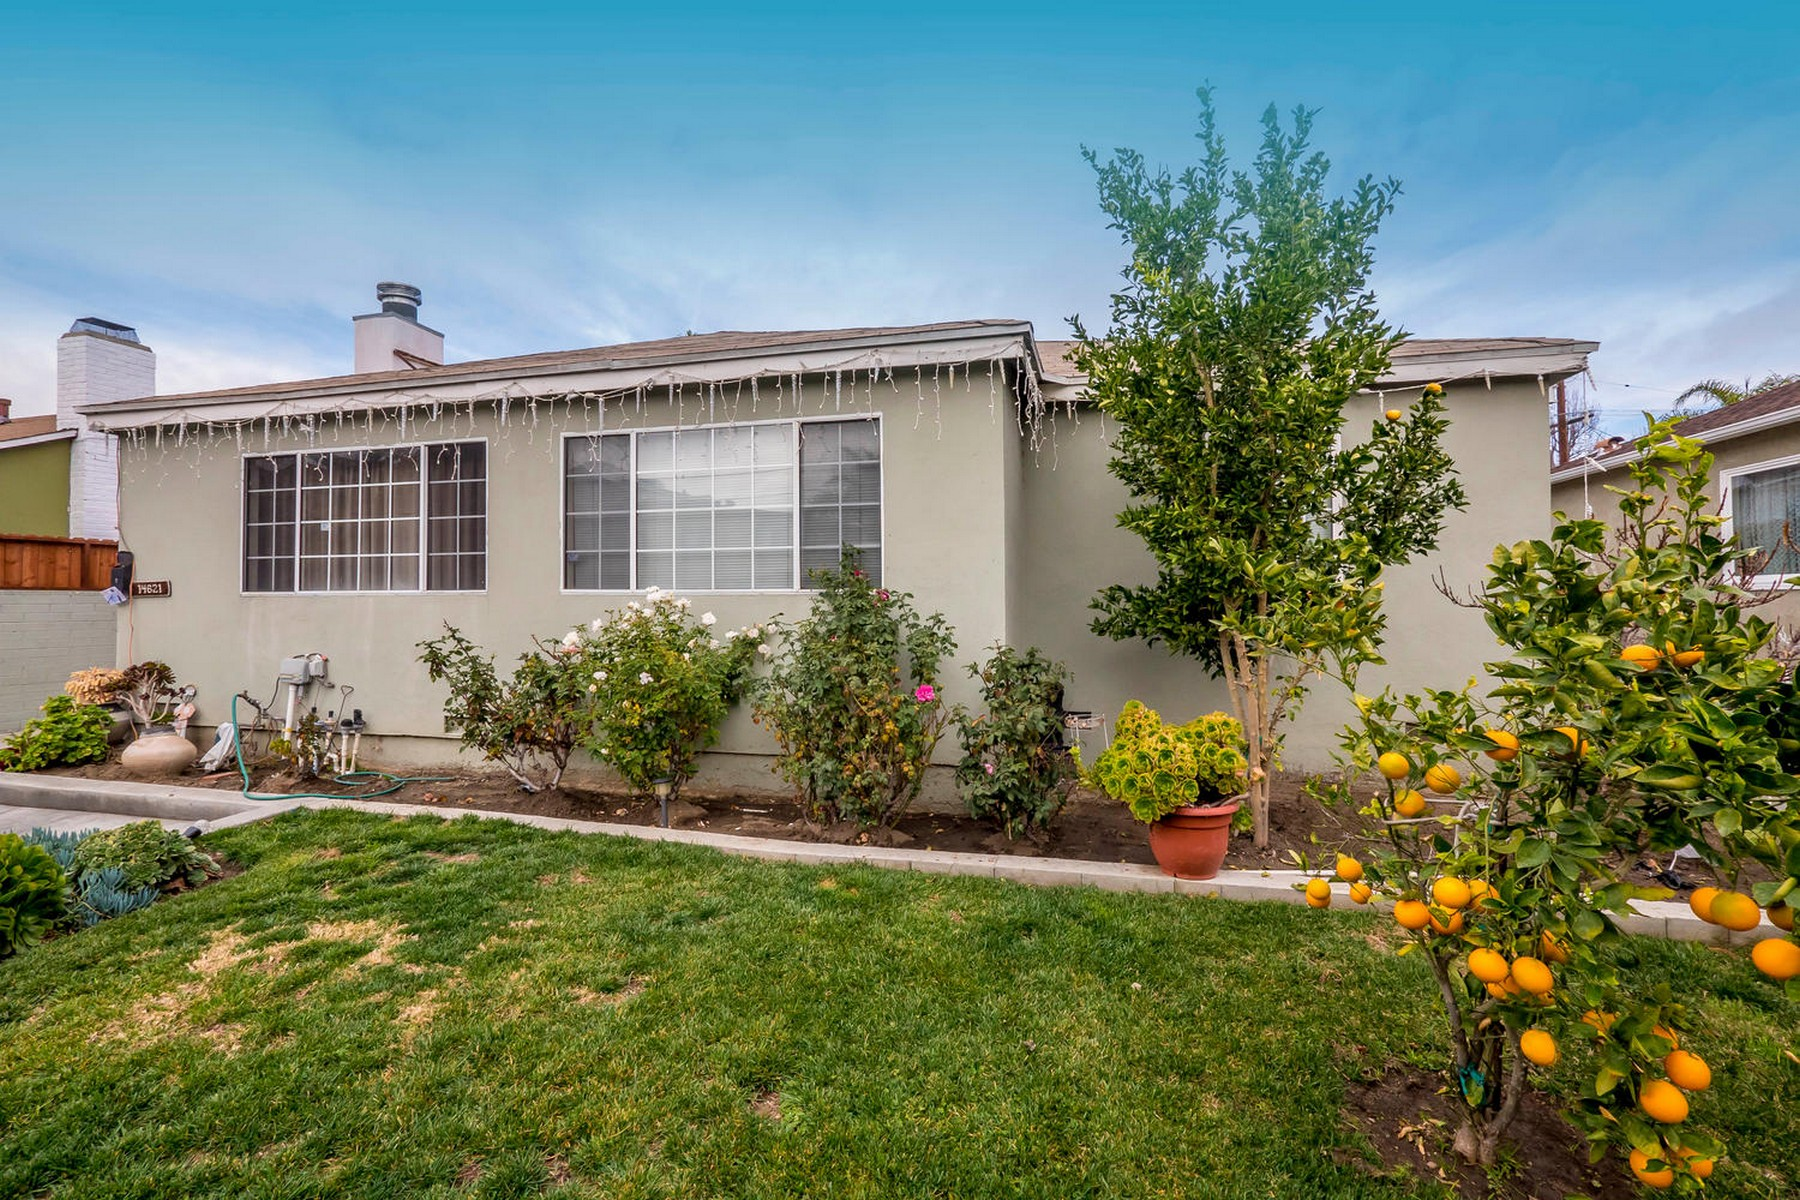 Single Family Home for Sale at 14621 Wyandotte 14621 Wyandotte St Van Nuys, California 91405 United States